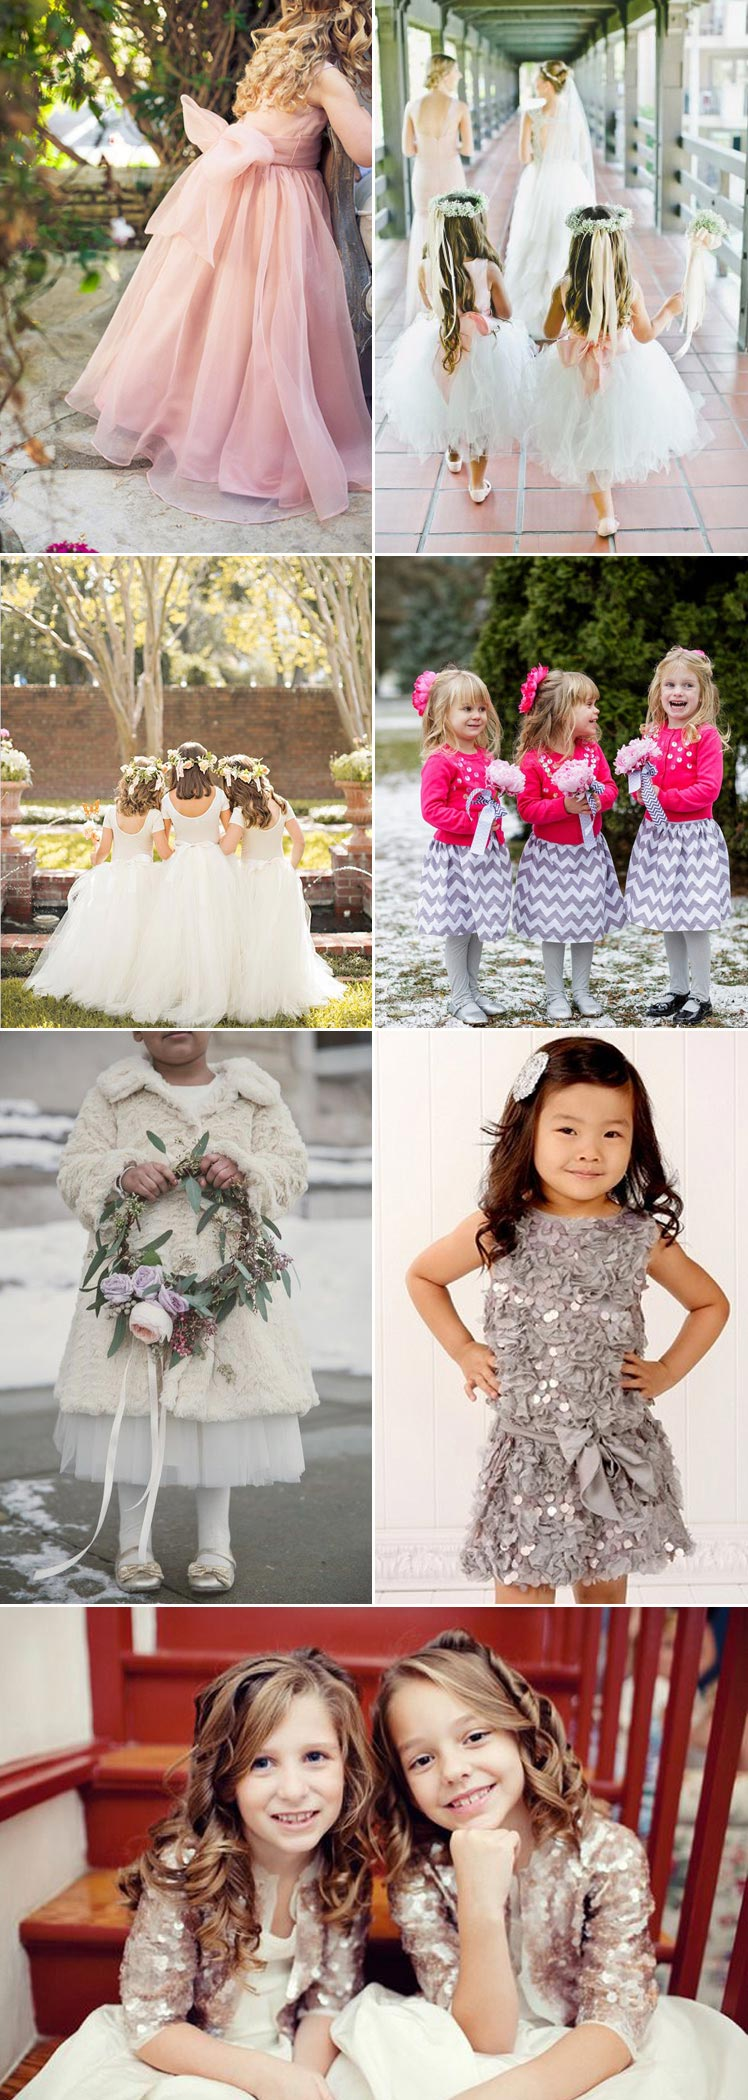 Pretty bridesmaid dress ideas for your flower girls